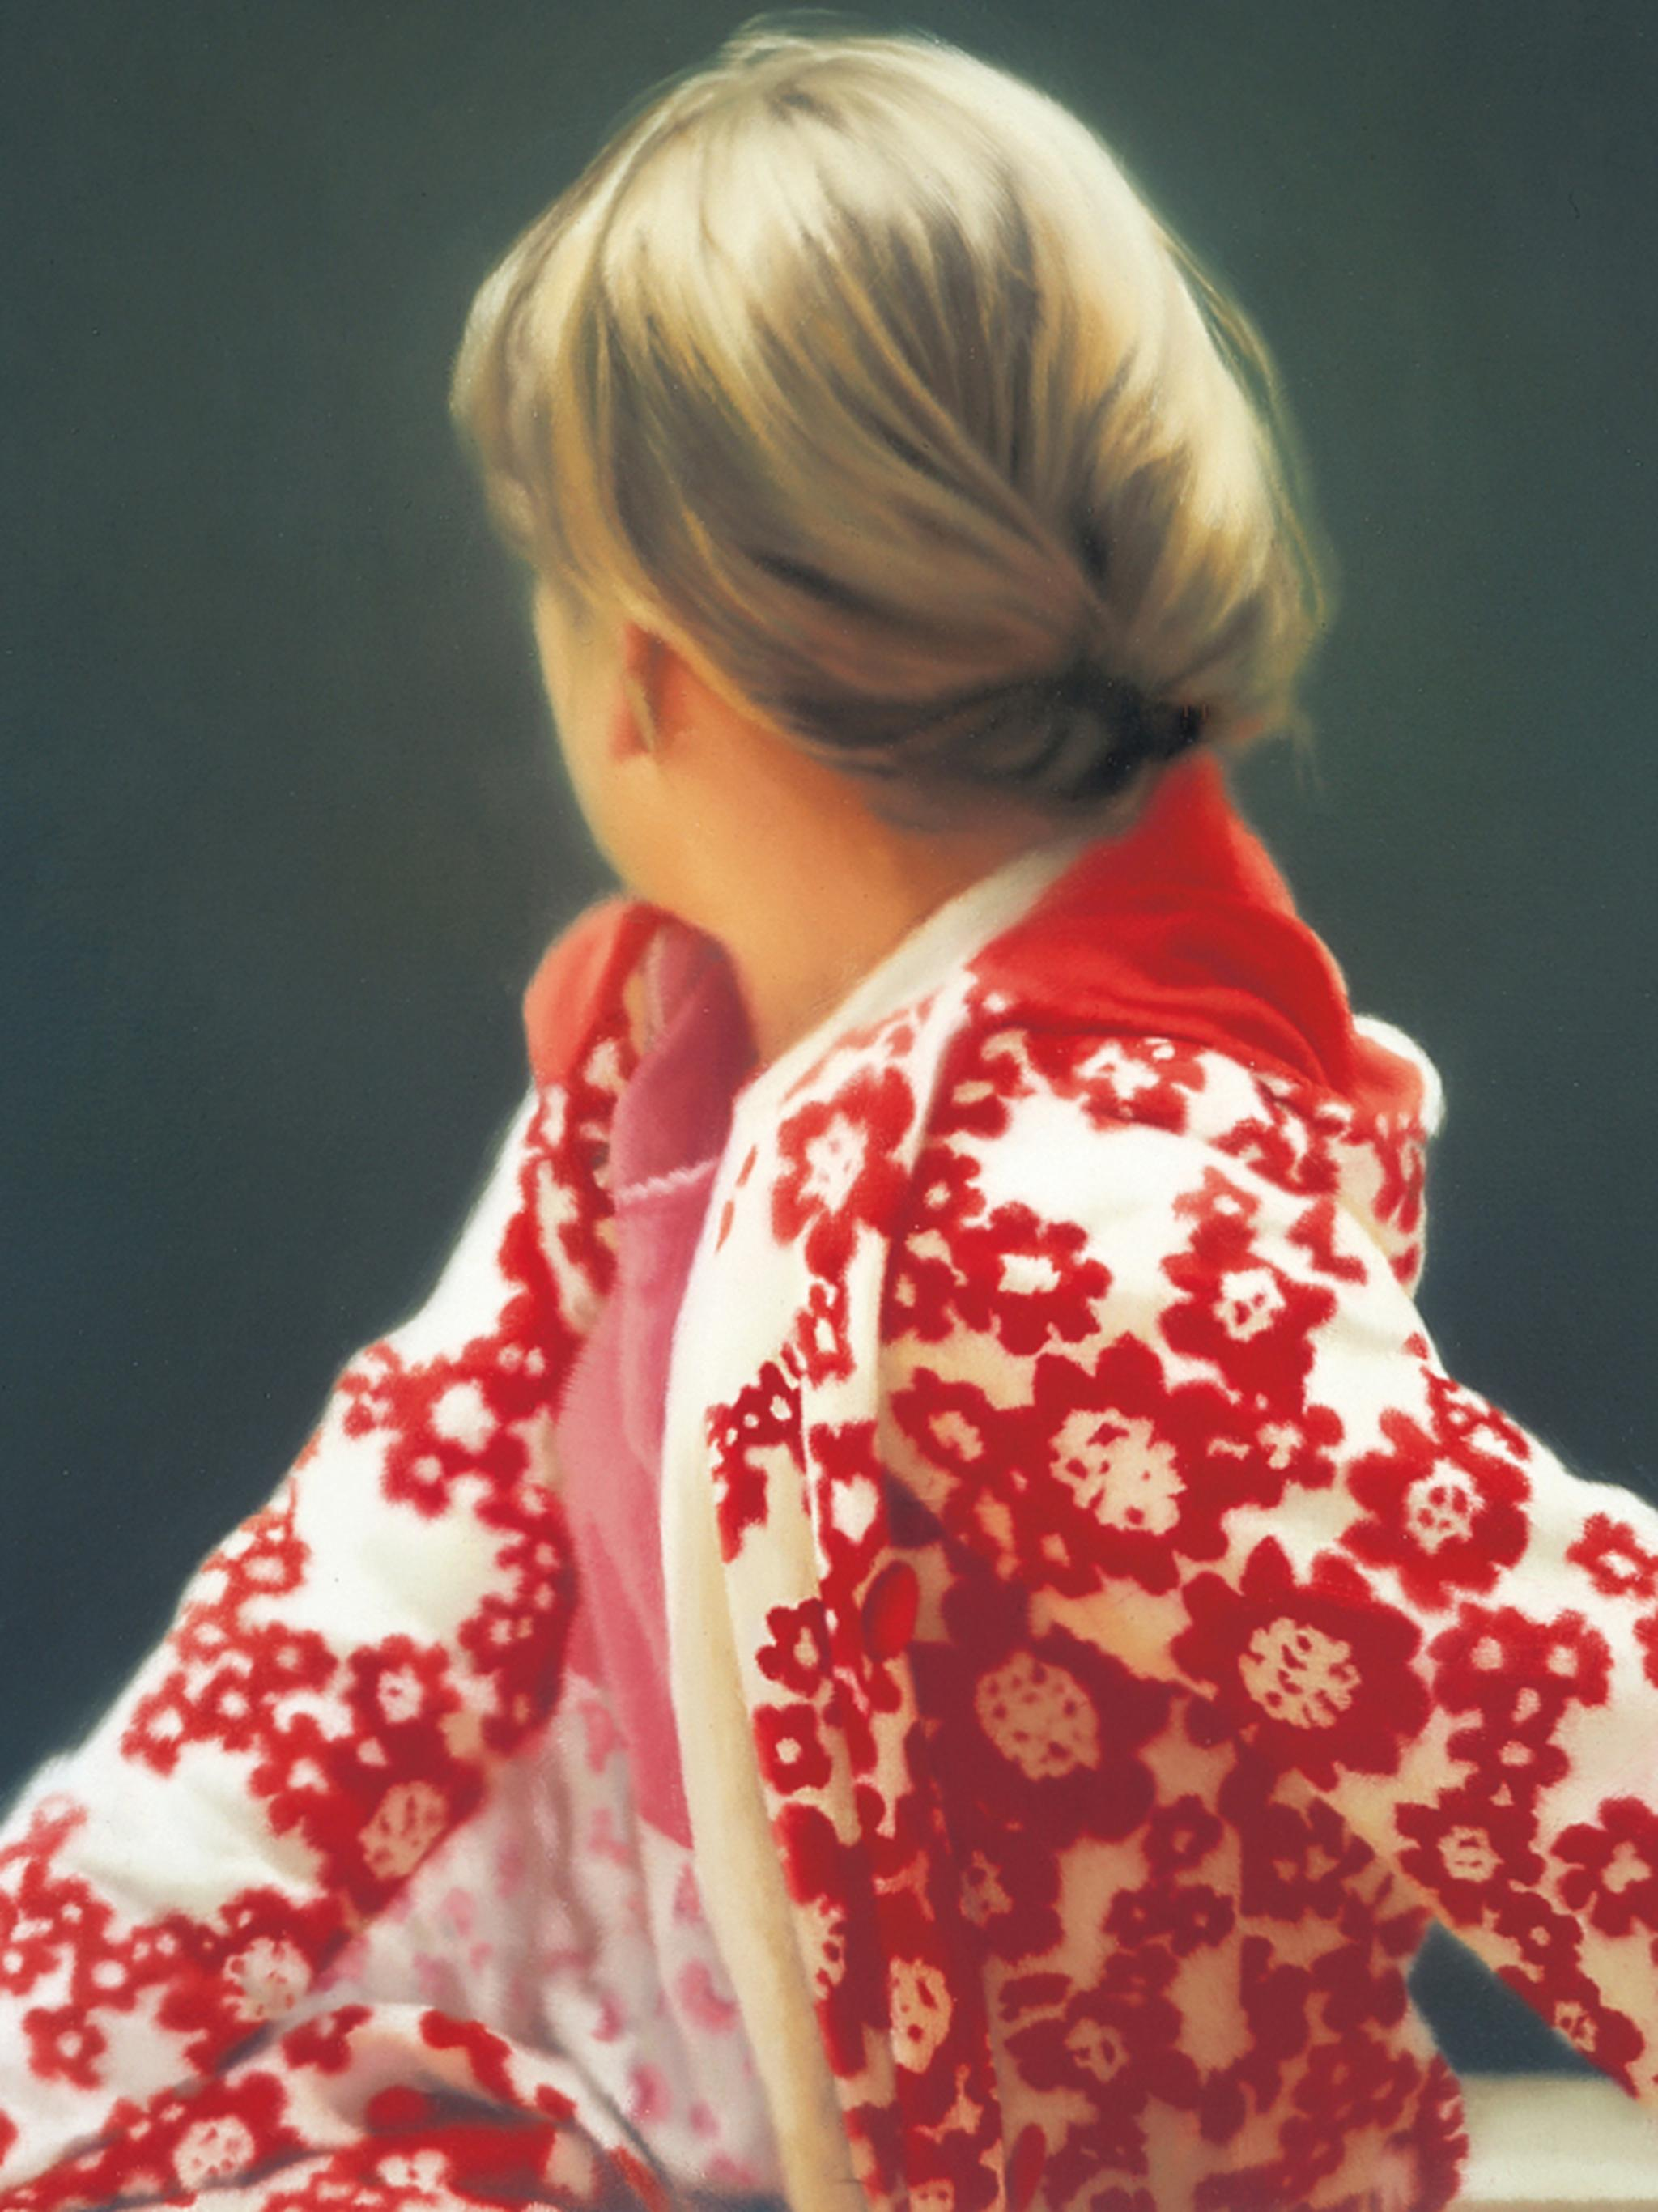 Gerhard Richter, Betty, 1988.jpg